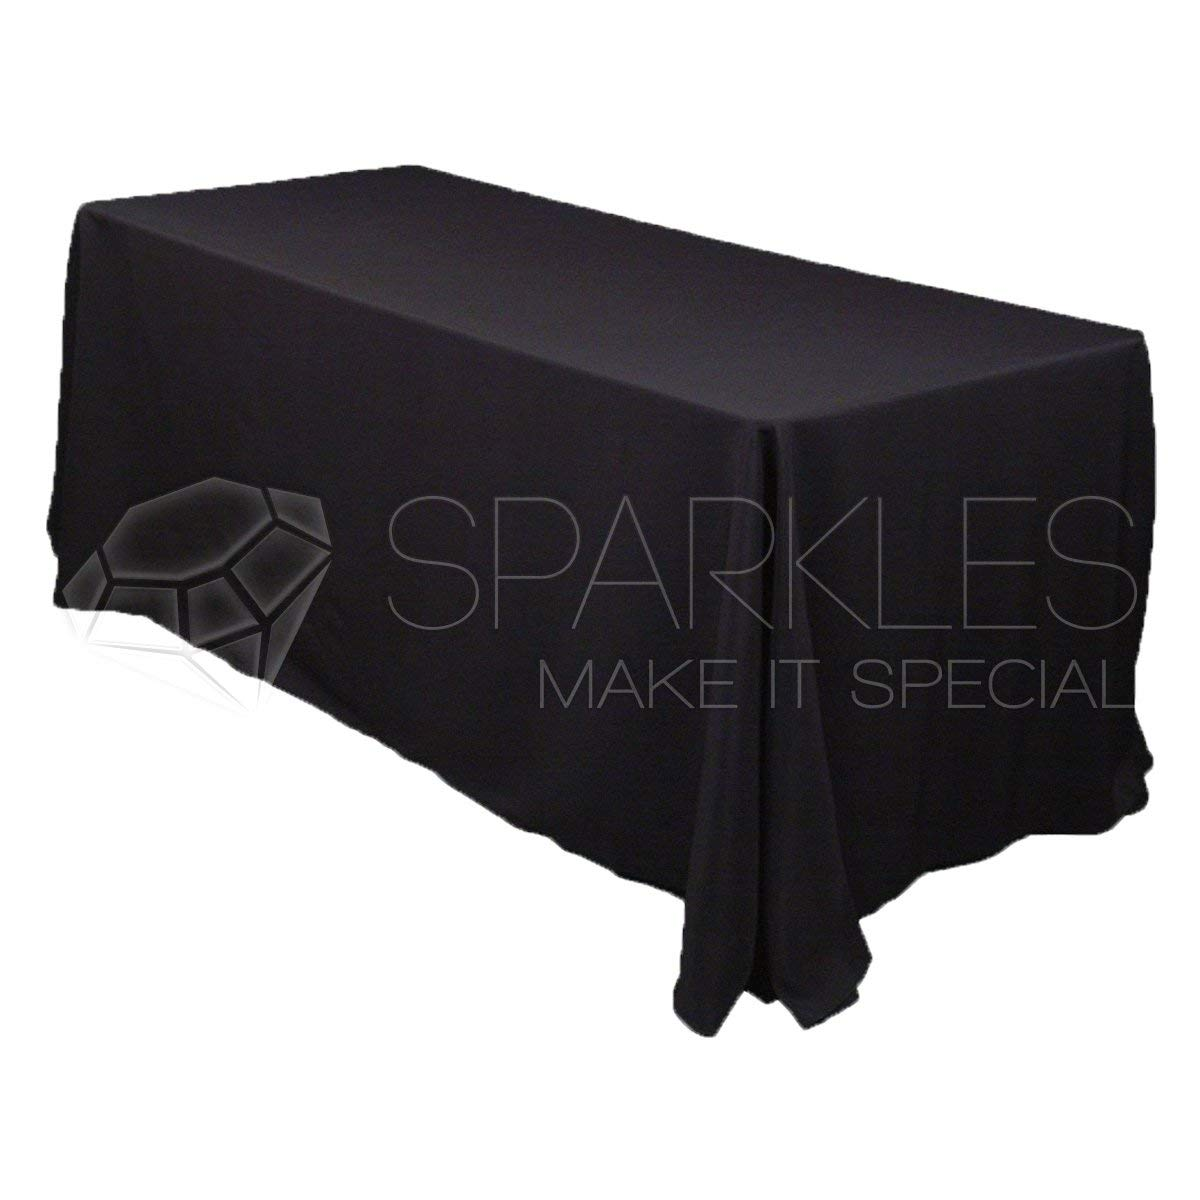 """Sparkles Make It Special 90"""" x 132"""" Inch Rectangular Polyester Cloth Fabric Linen Tablecloth - Wedding Reception Restaurant Banquet Party - Machine Washable - Black"""